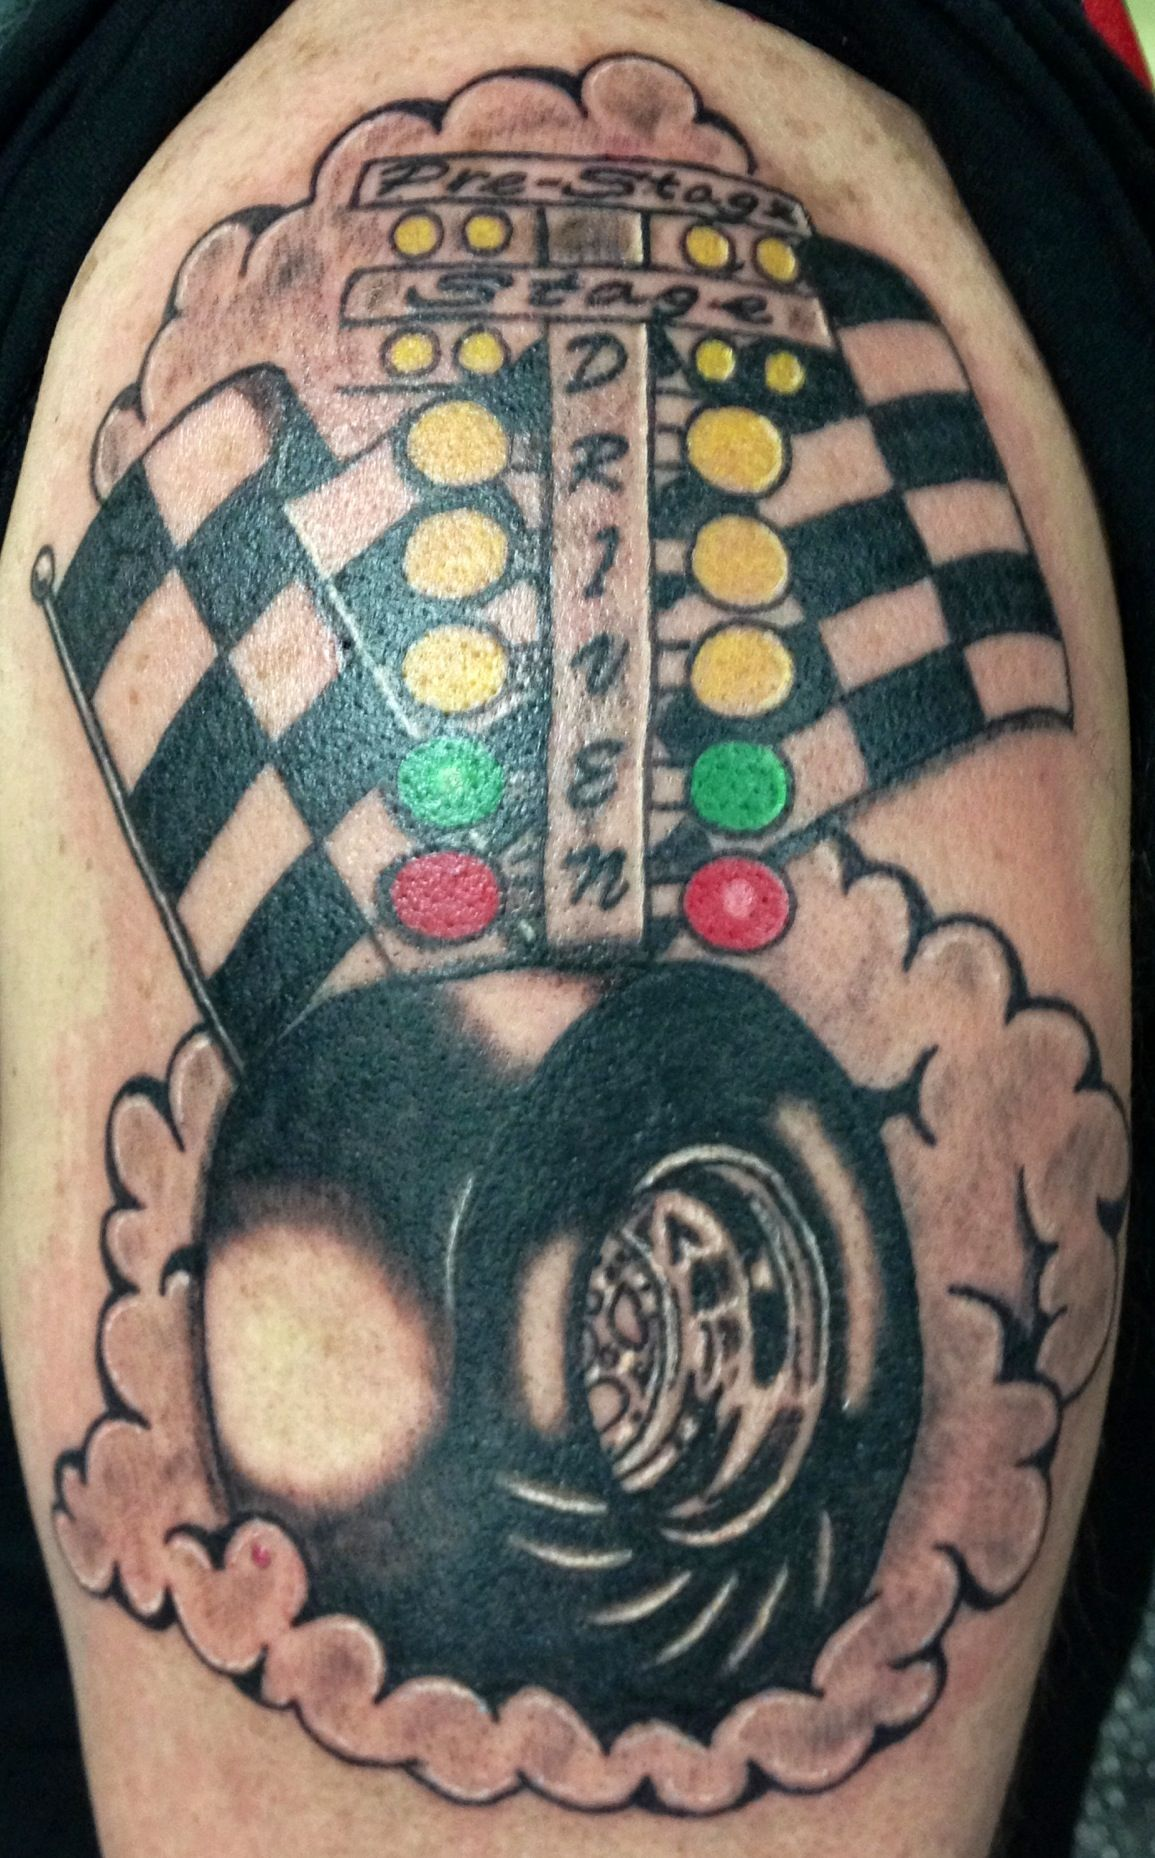 Discussion on this topic: 40 Checkered Flag Tattoo Ideas For Men , 40-checkered-flag-tattoo-ideas-for-men/